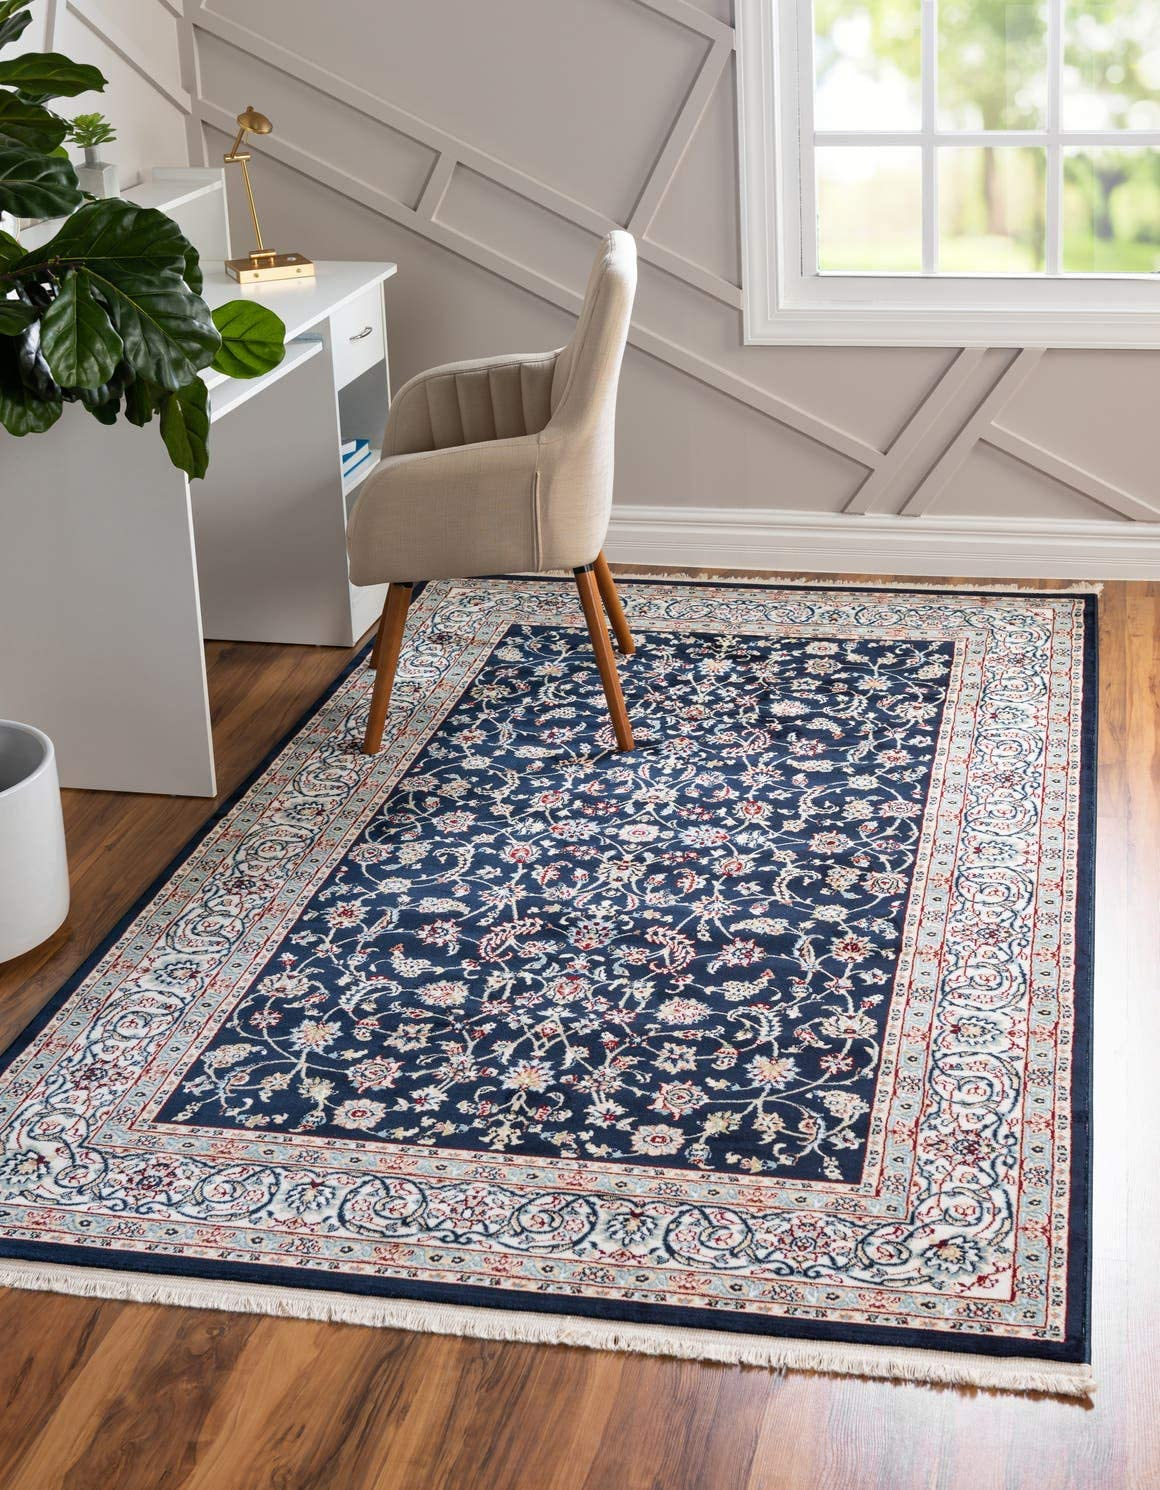 Unique Loom Narenj Collection Classic Traditional Medallion Textured Navy Blue Area Rug 13 0 x 19 8